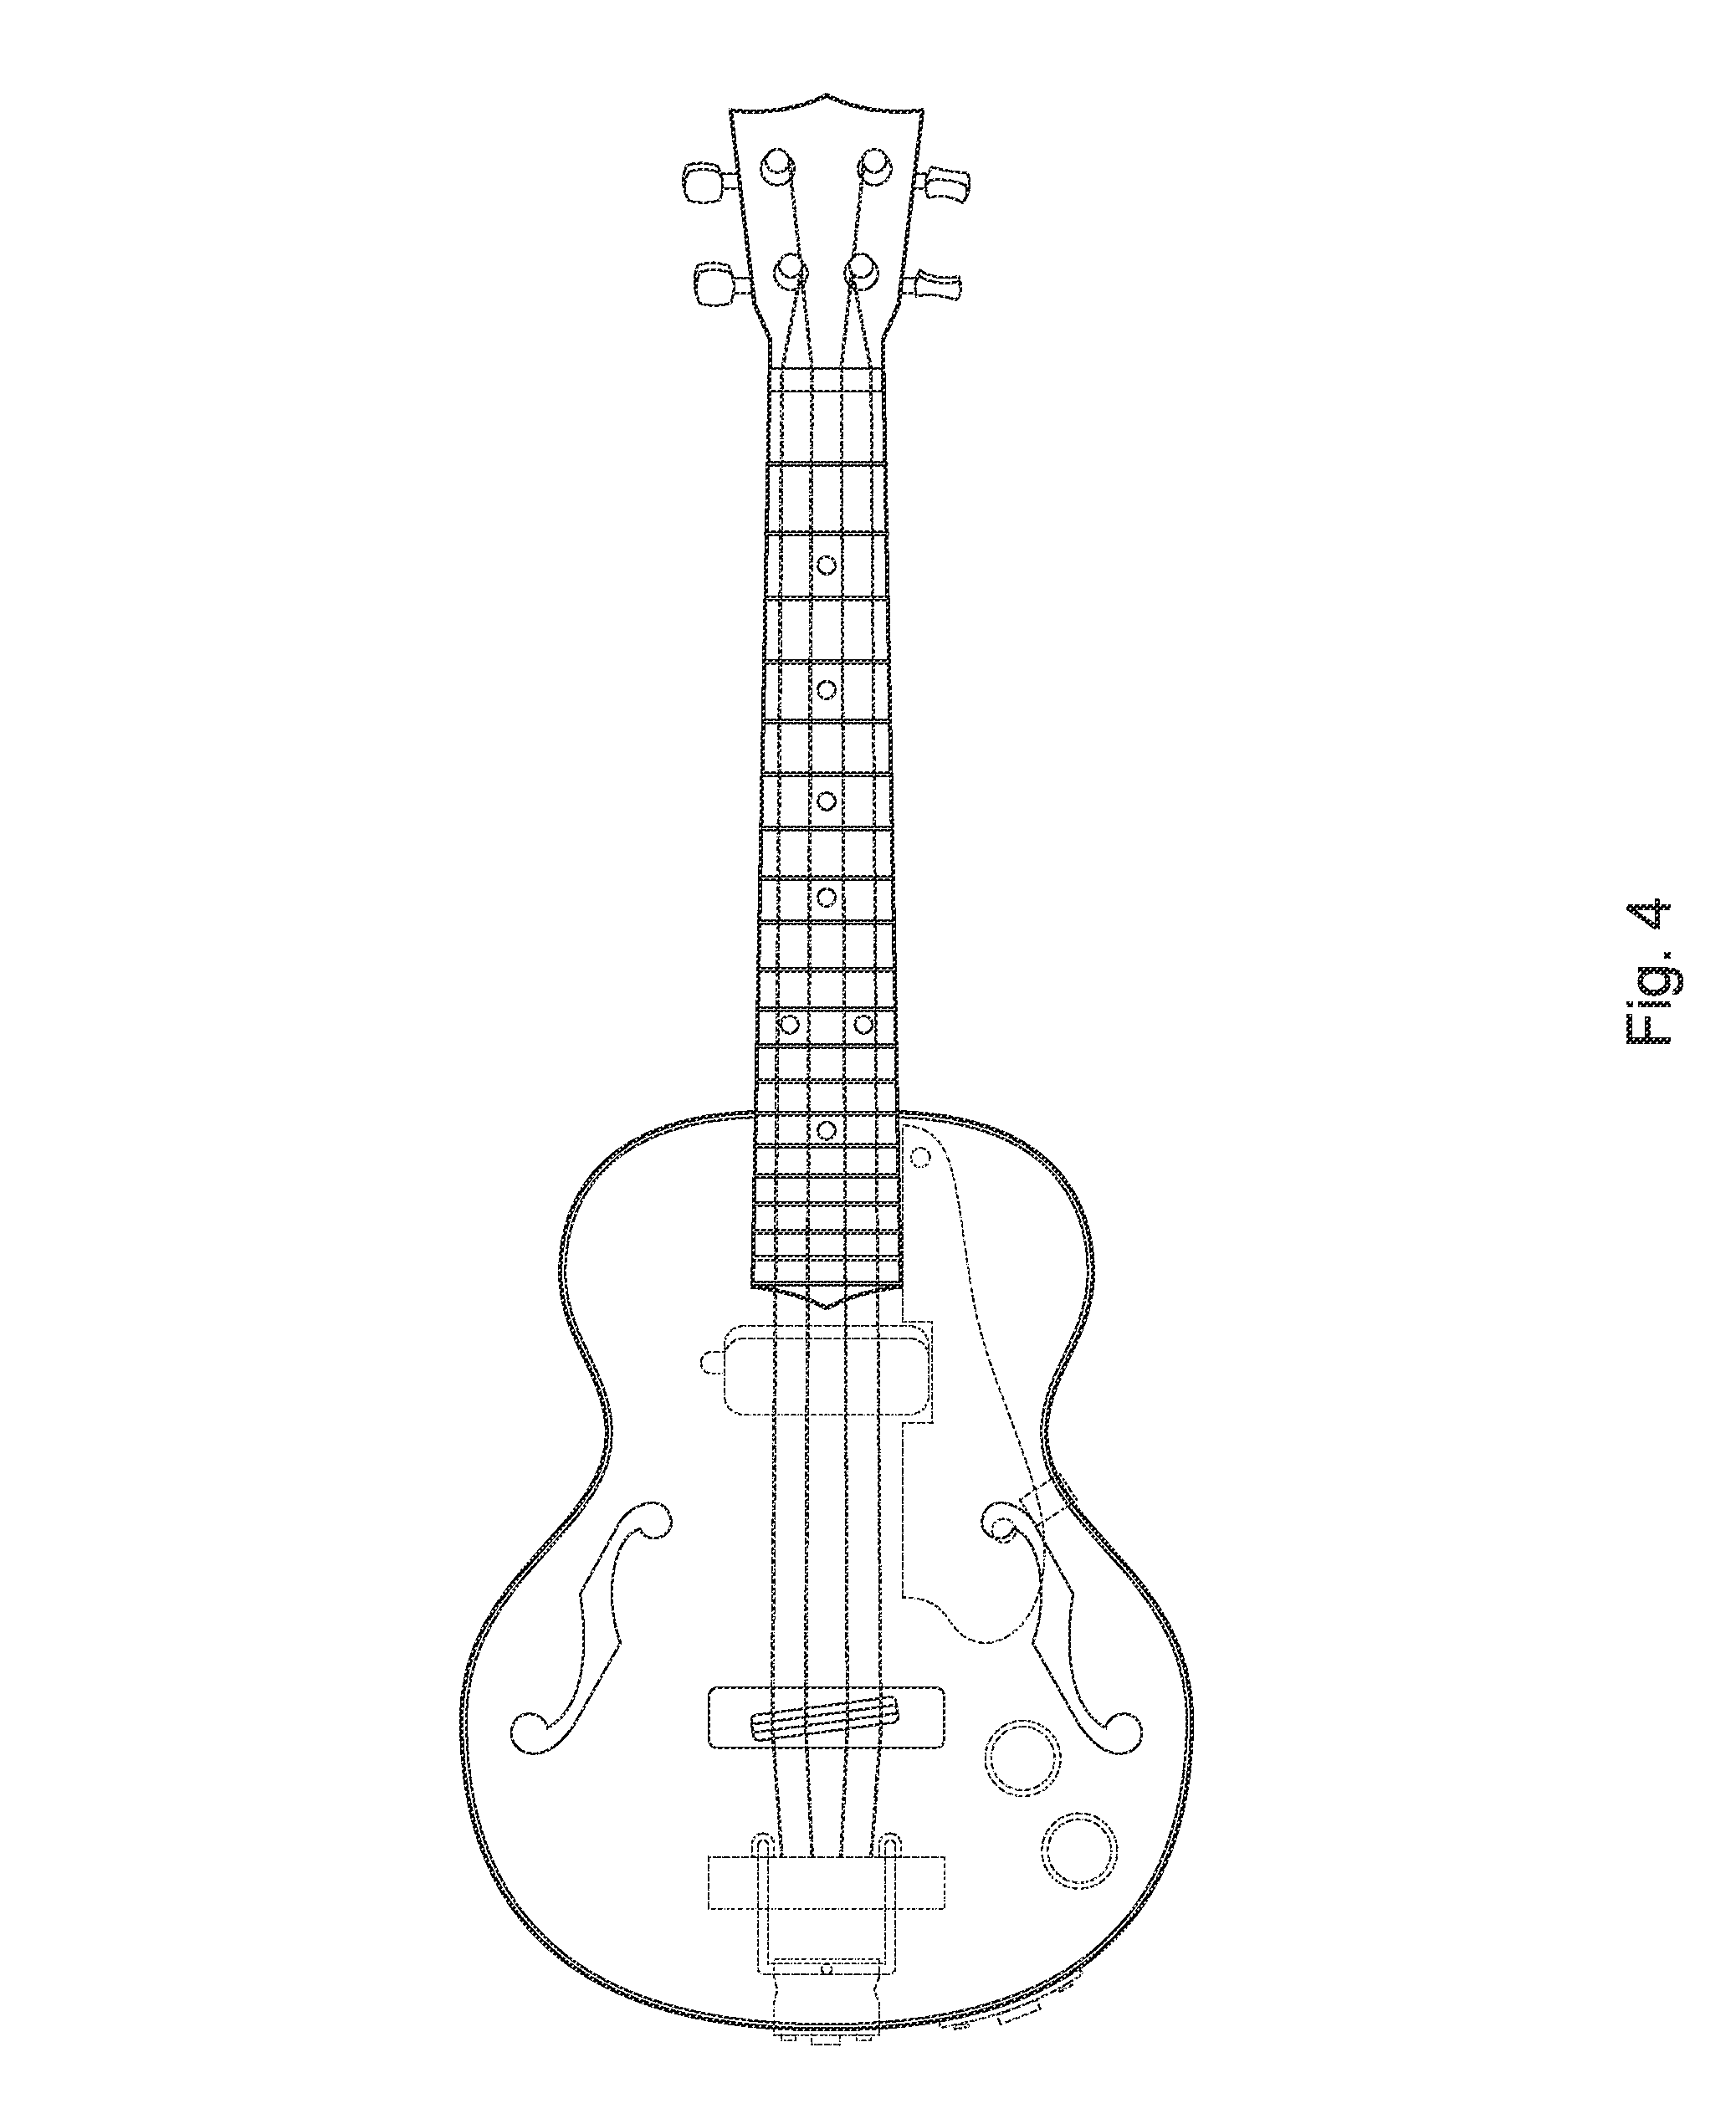 patent usd671592 - electric ukulele